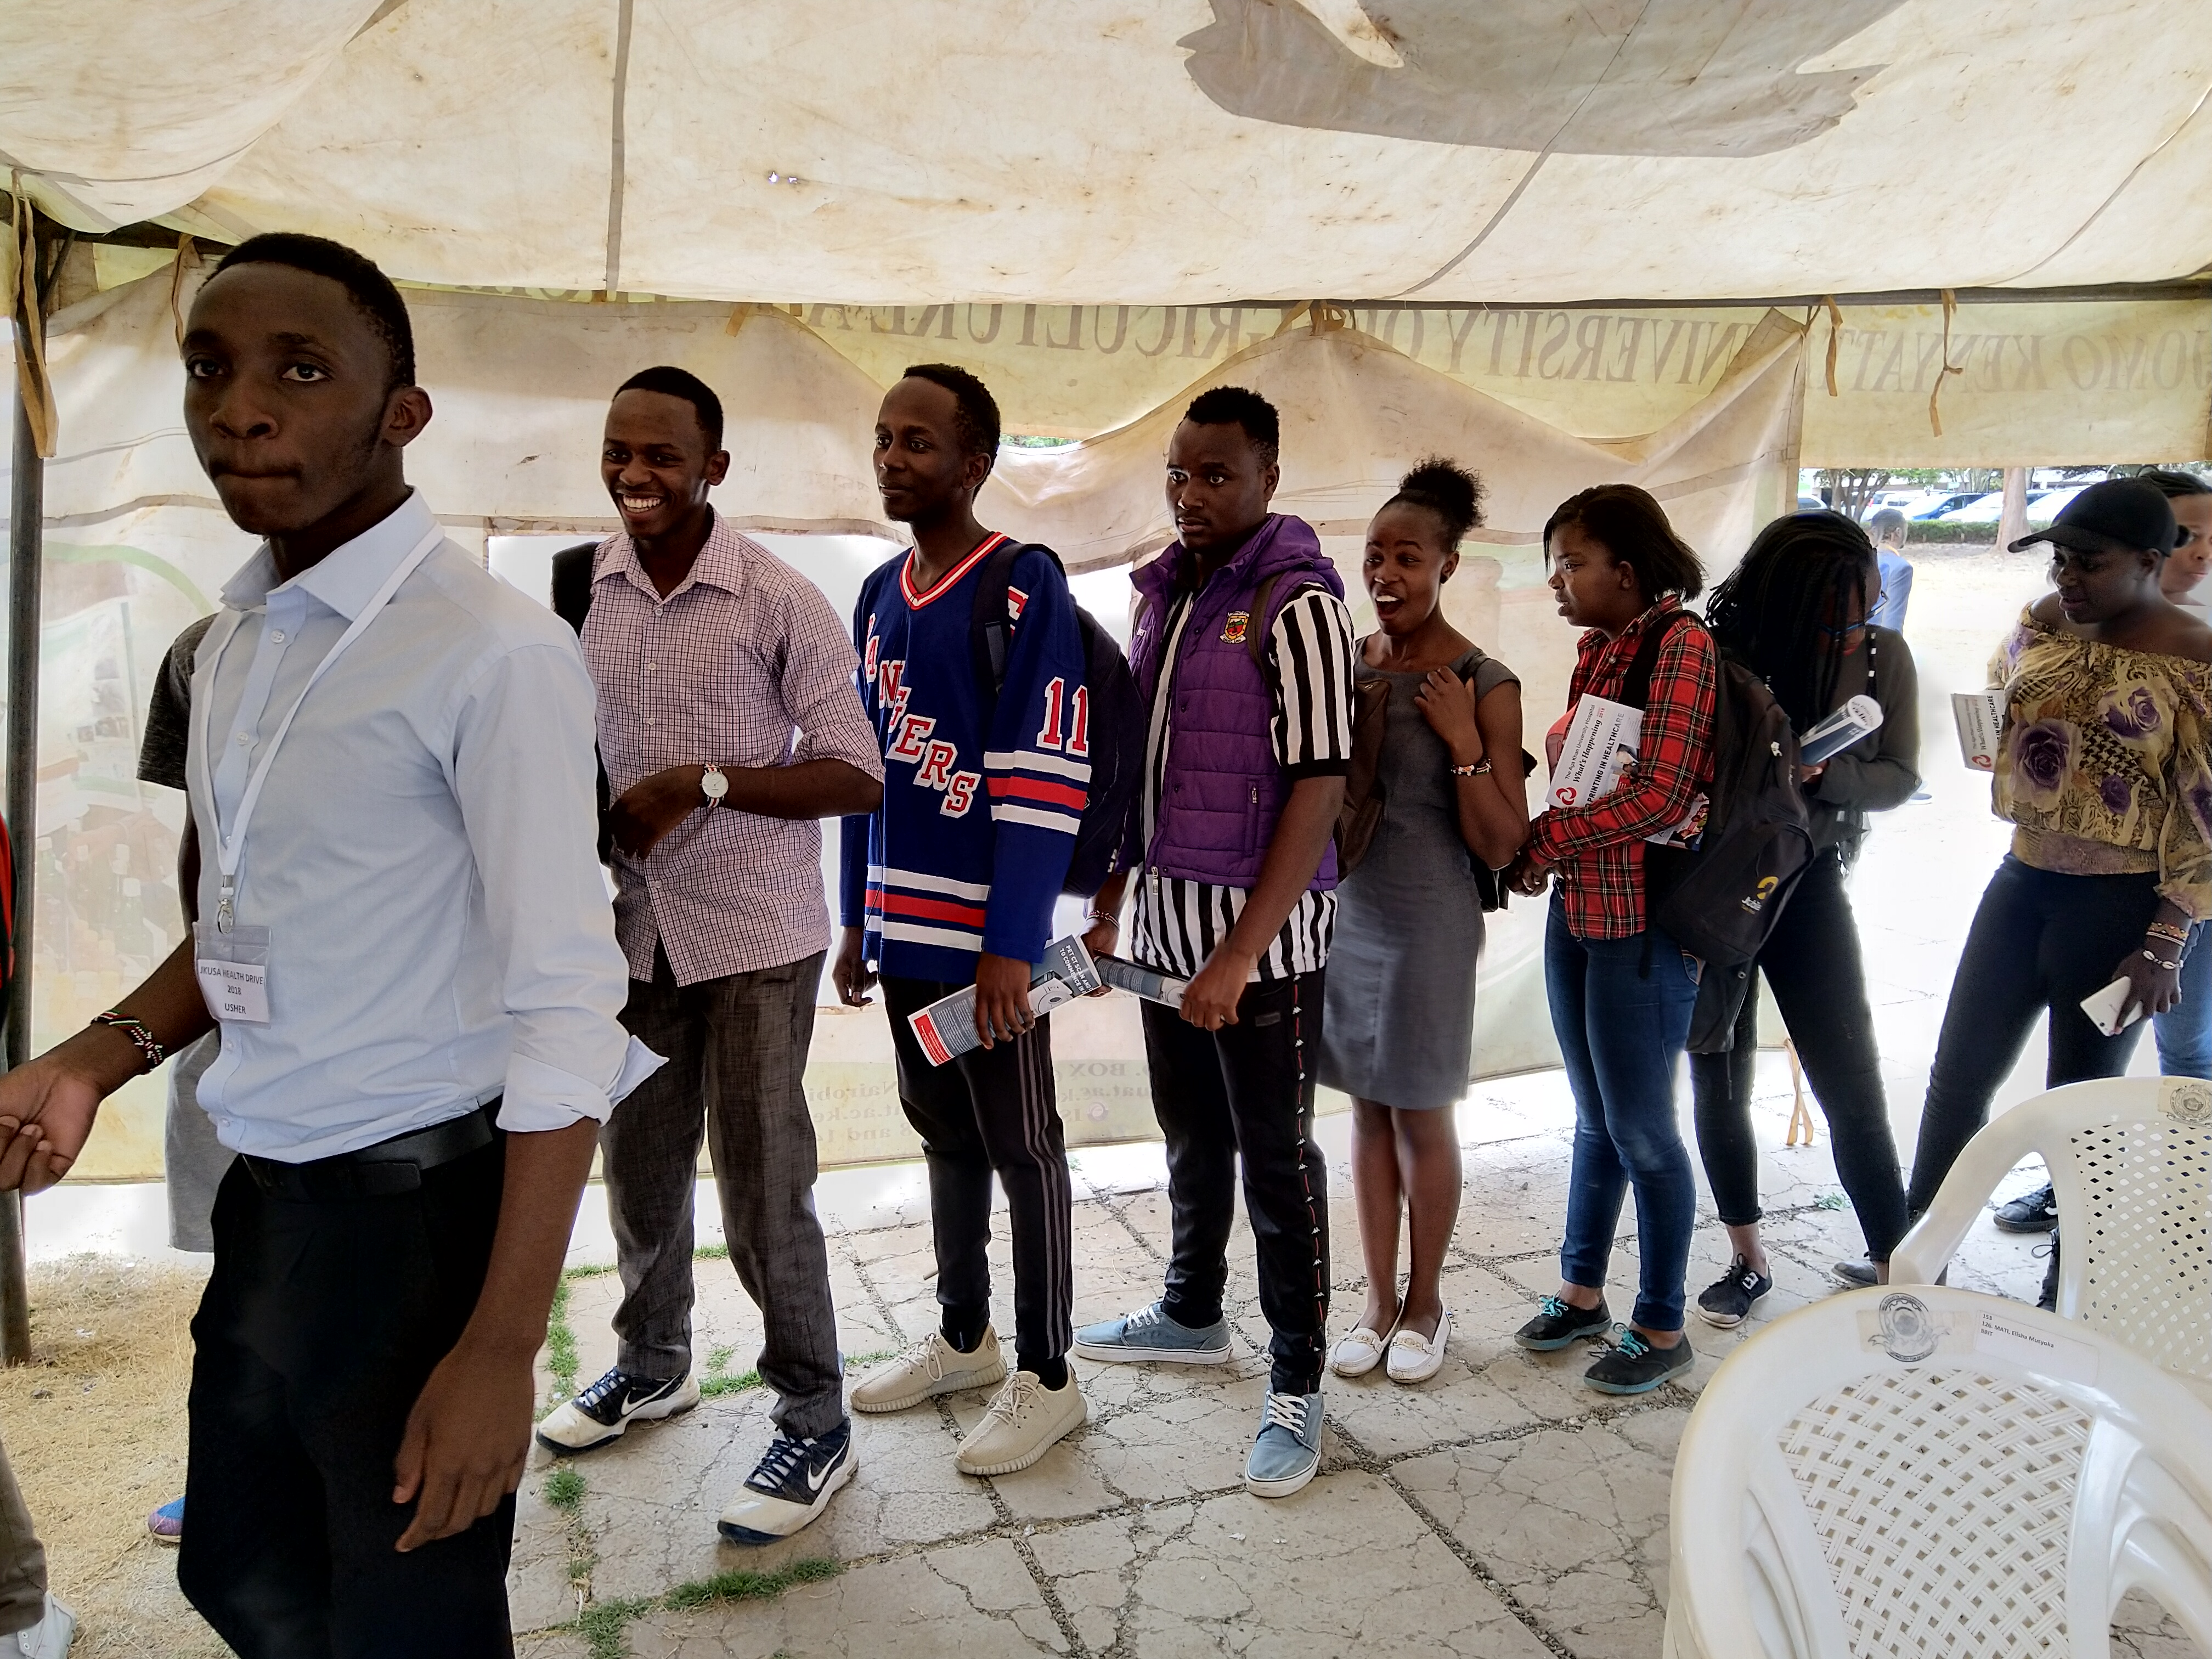 Students queue for some of the services